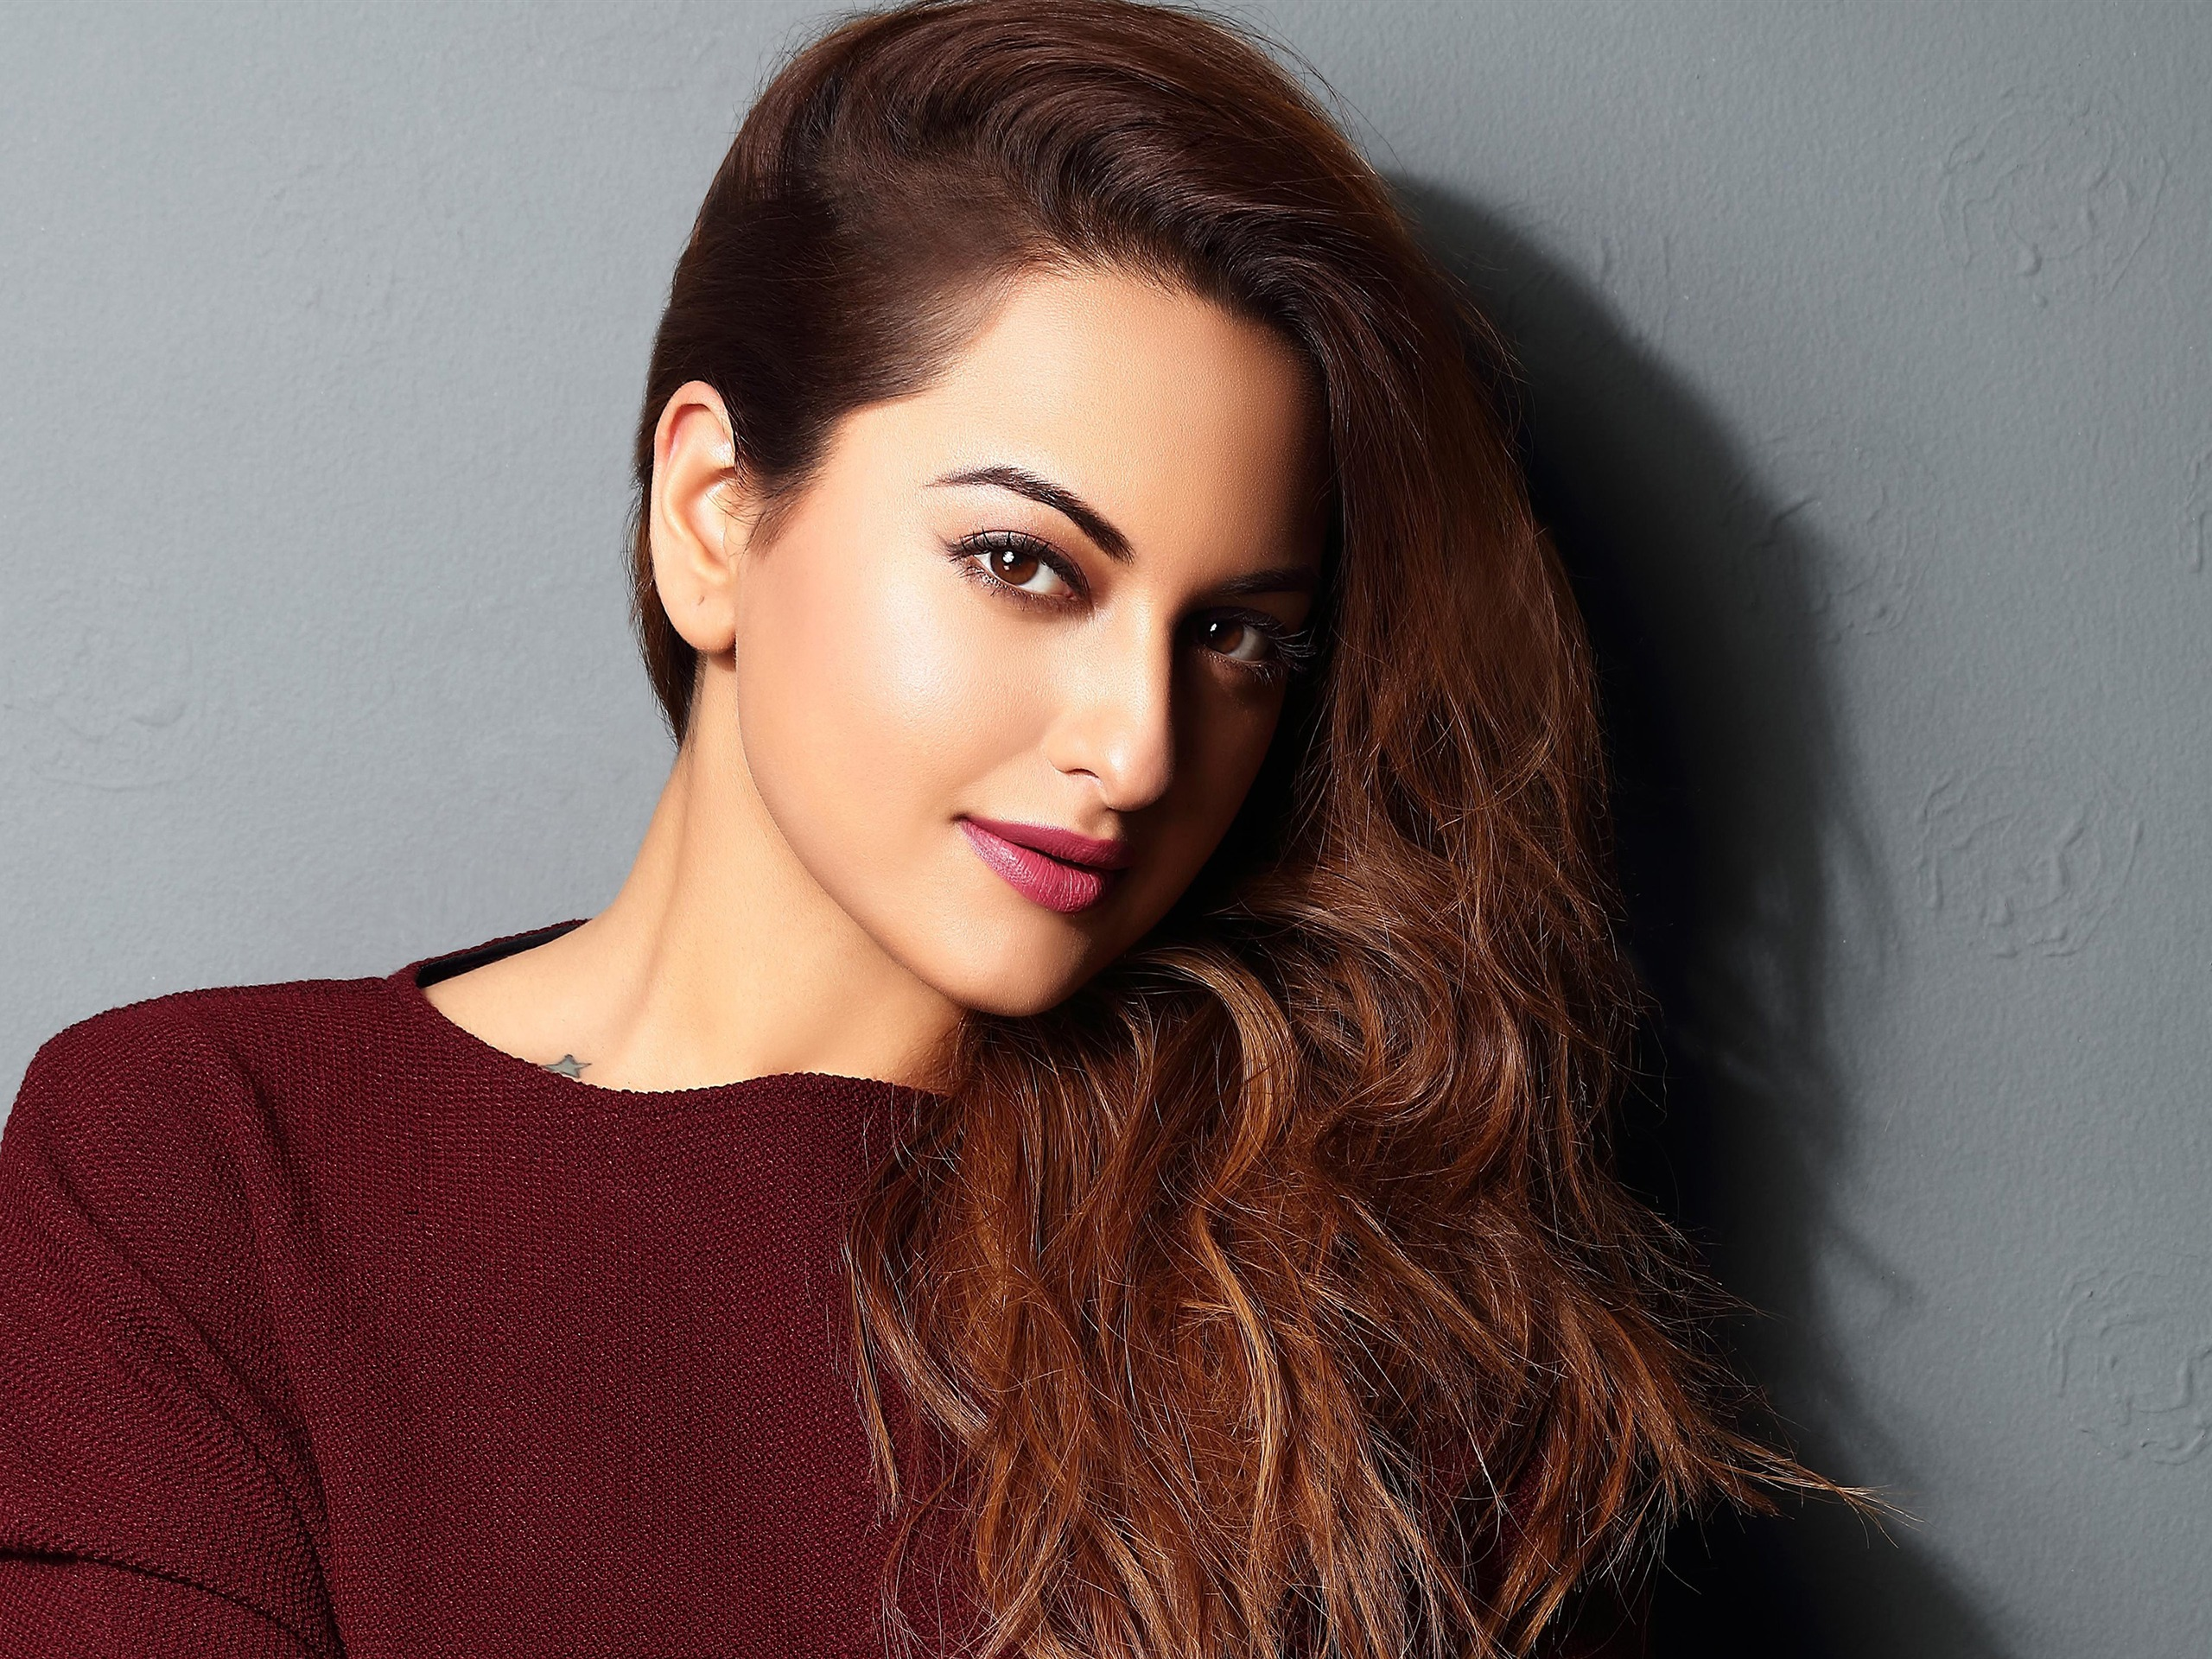 2018 Sonakshi Sinha Indian Actor HD Photo - 2560x1920 wallpaper download